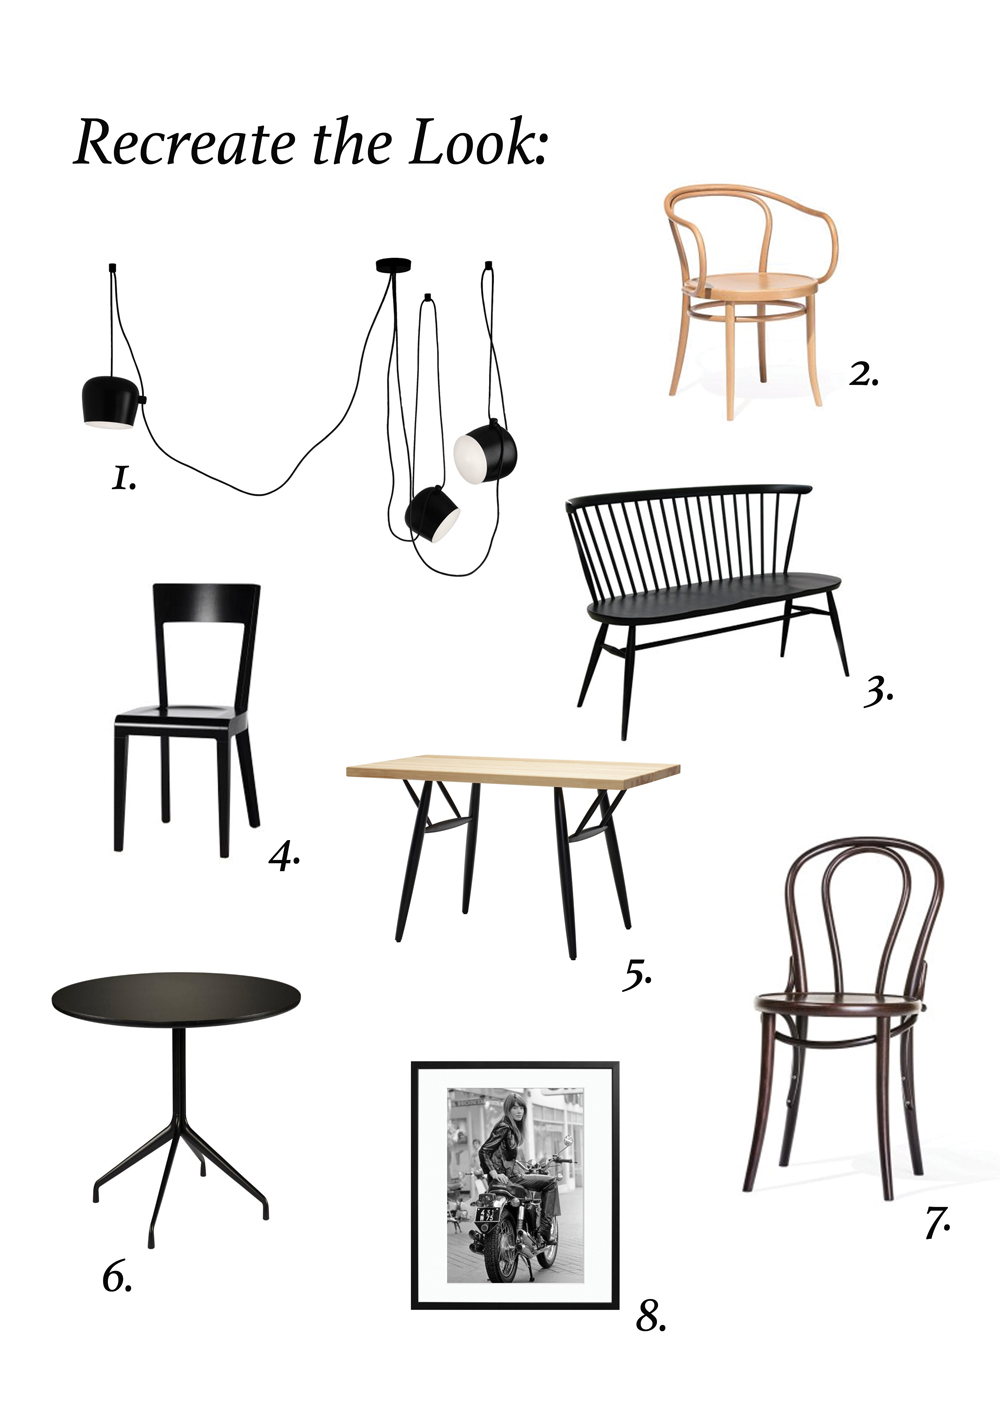 Recreate the look of a stylish coffee shop interior